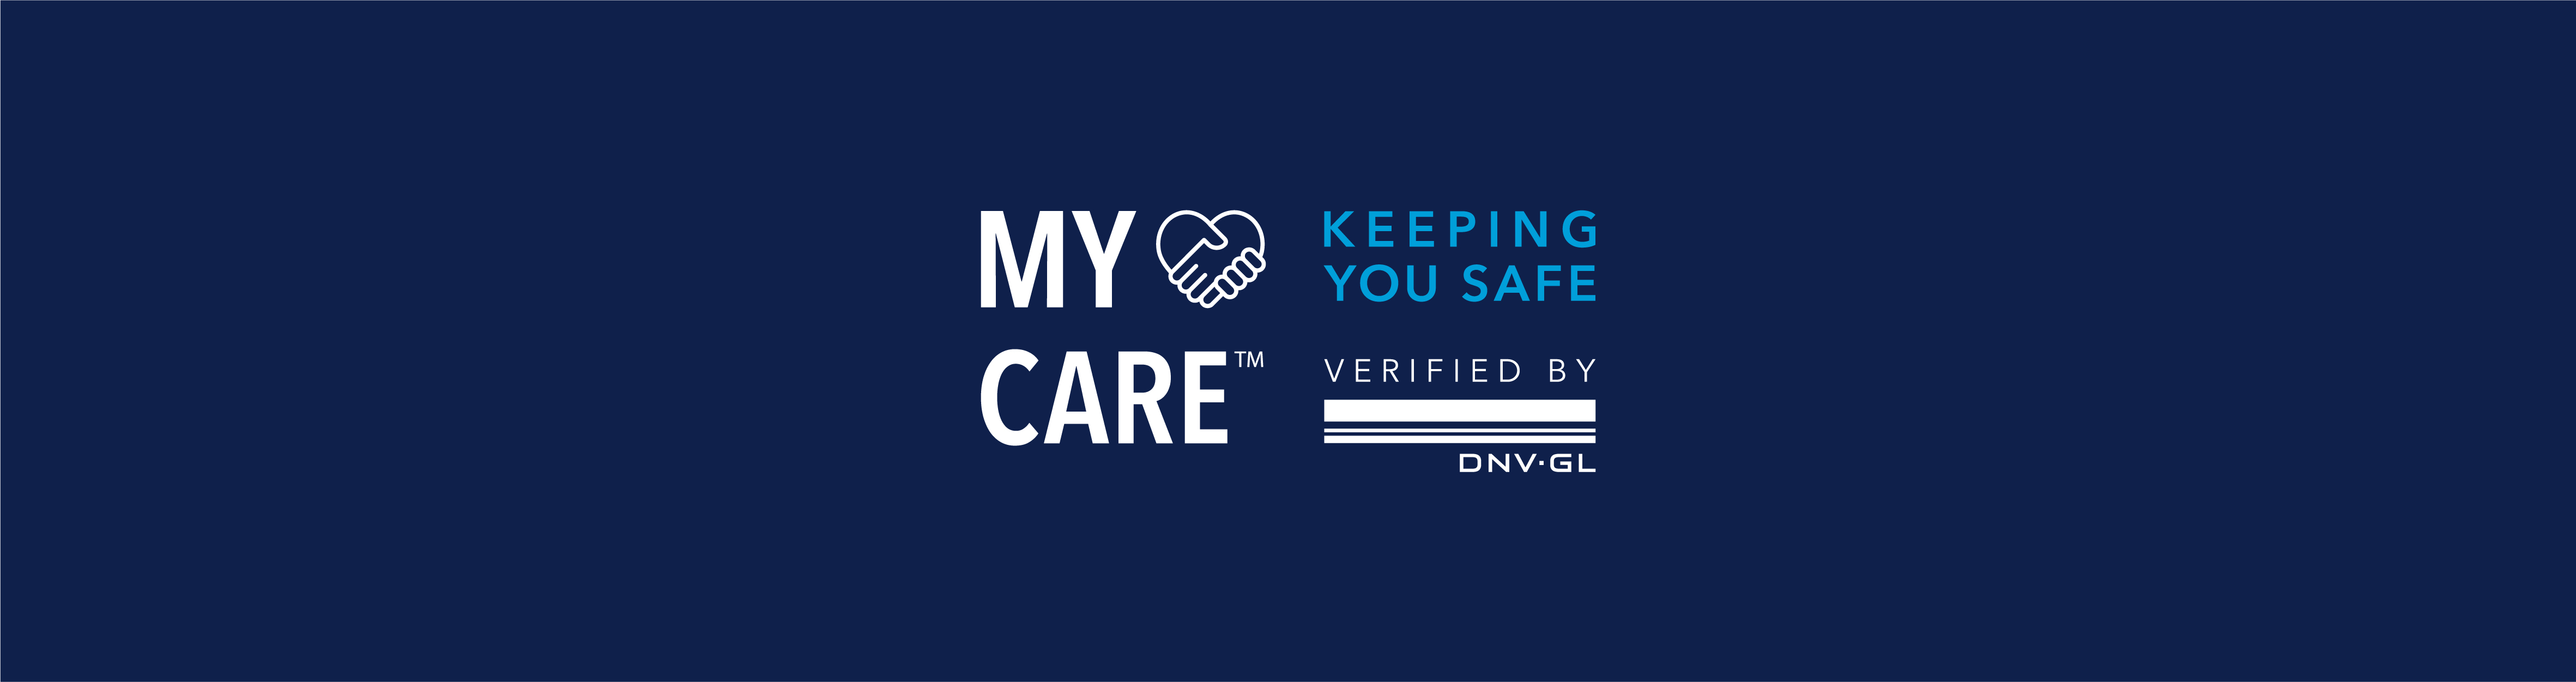 Label My Care